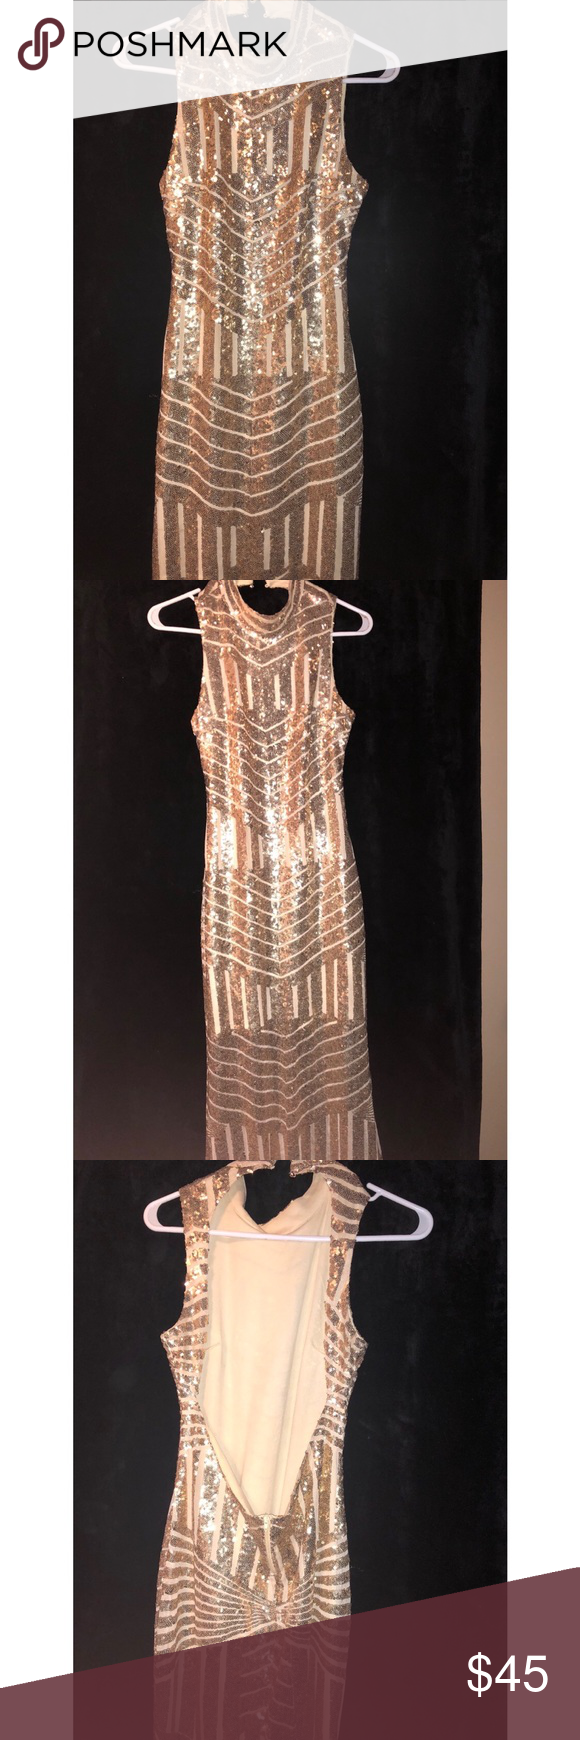 Gold sparkly dress gold sparkly dress long sparkly dresses and